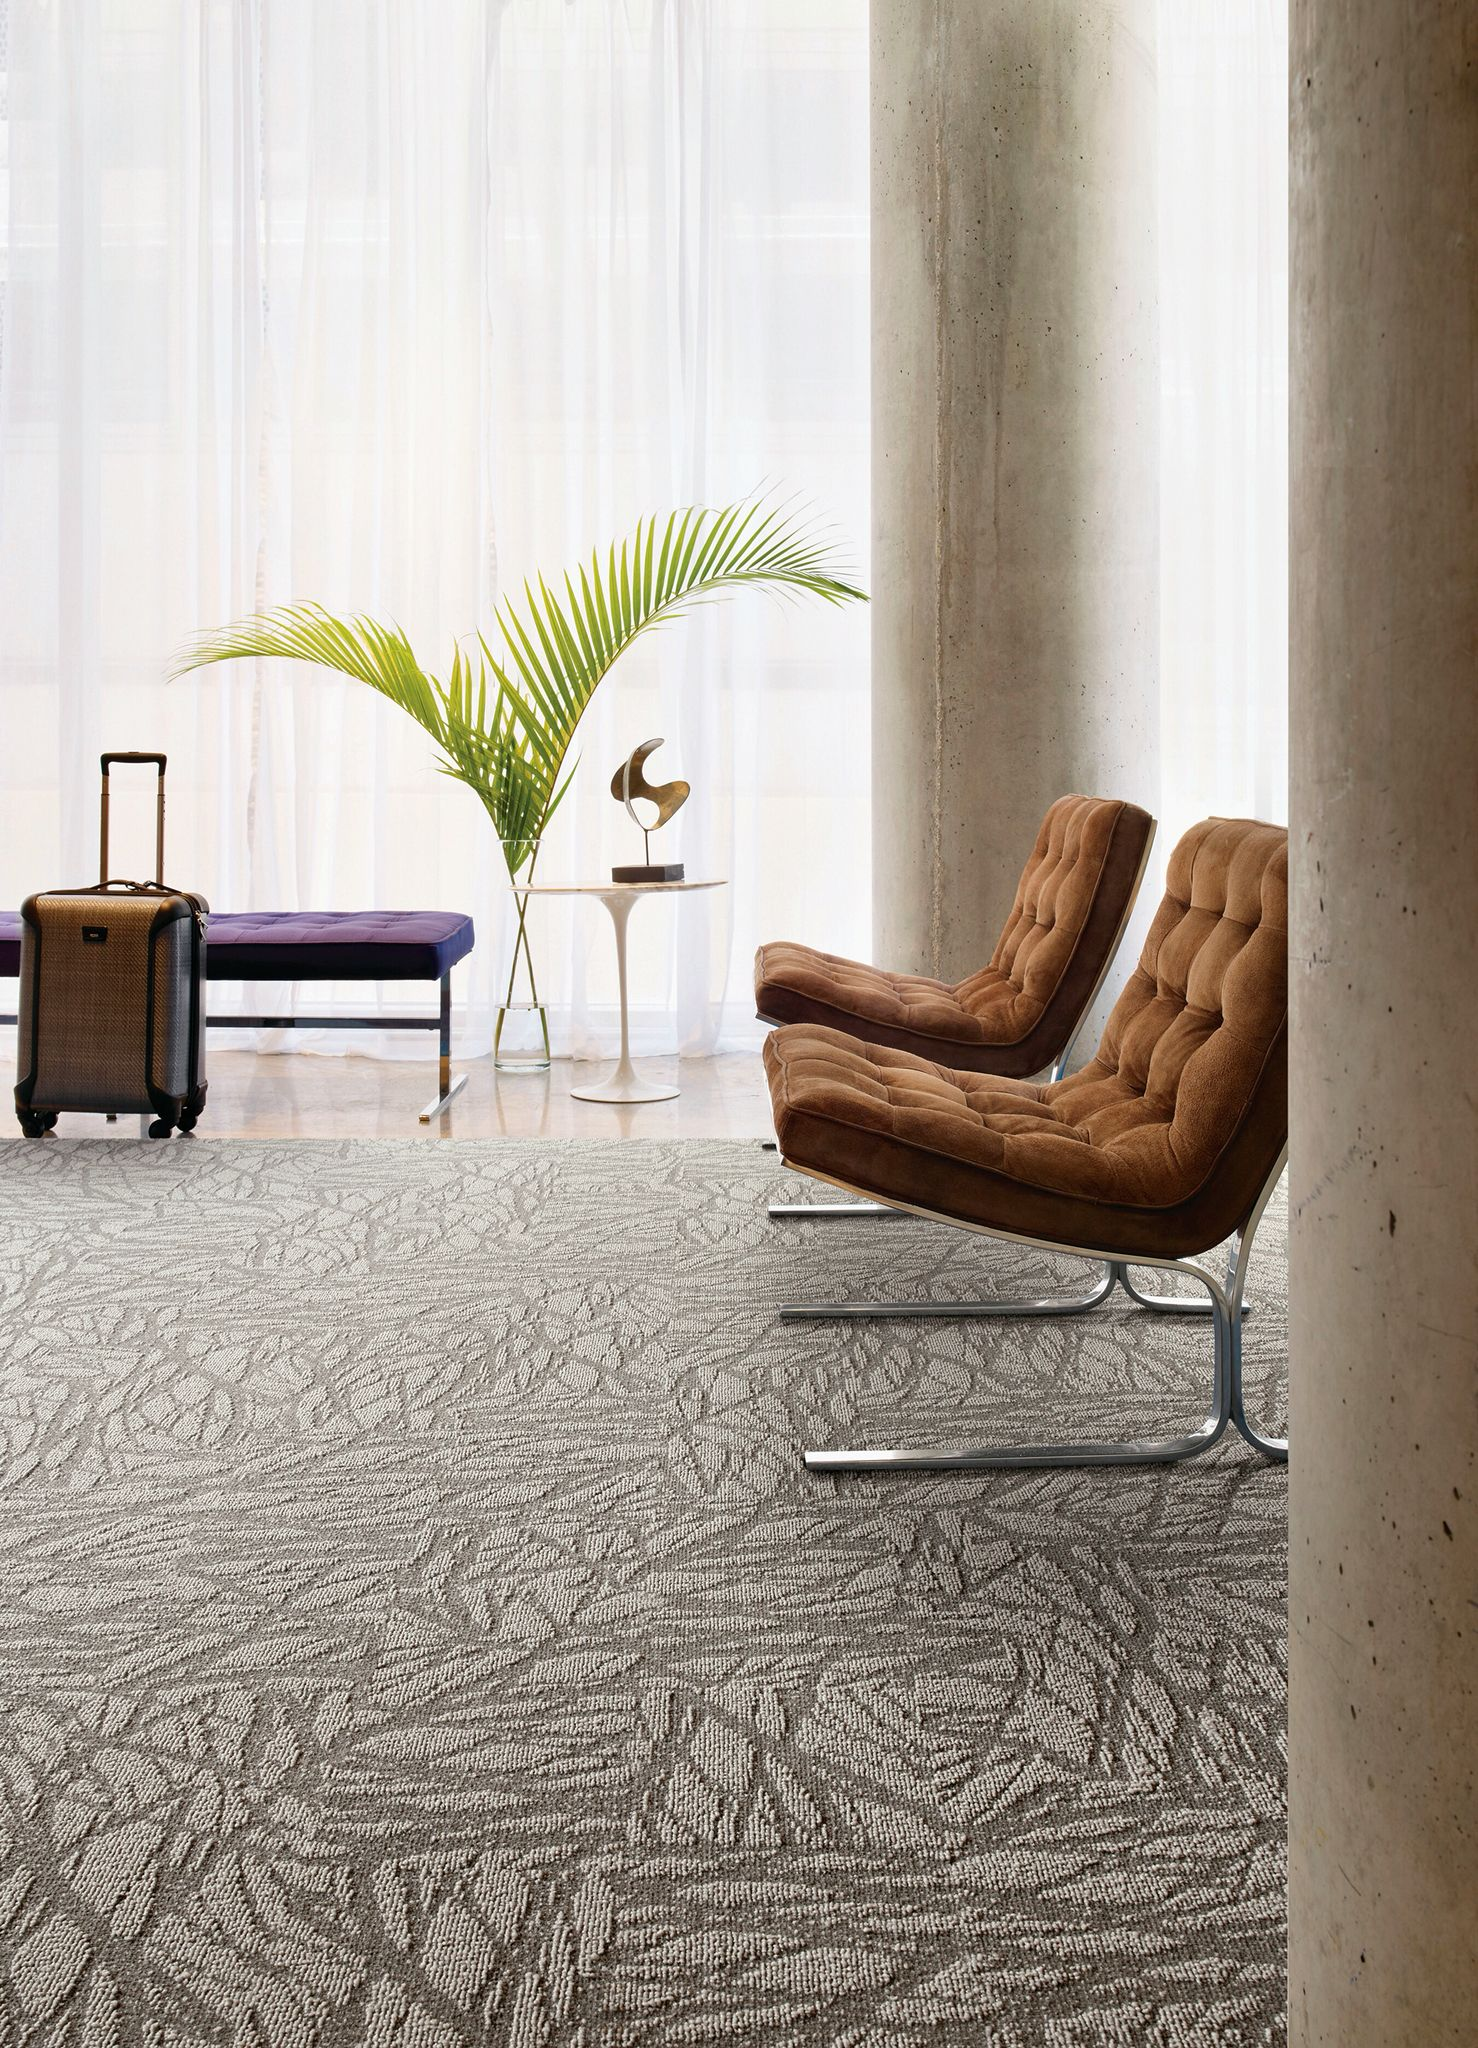 Pin By Mike Webb On Interface Hospitality Carpet Tile Images